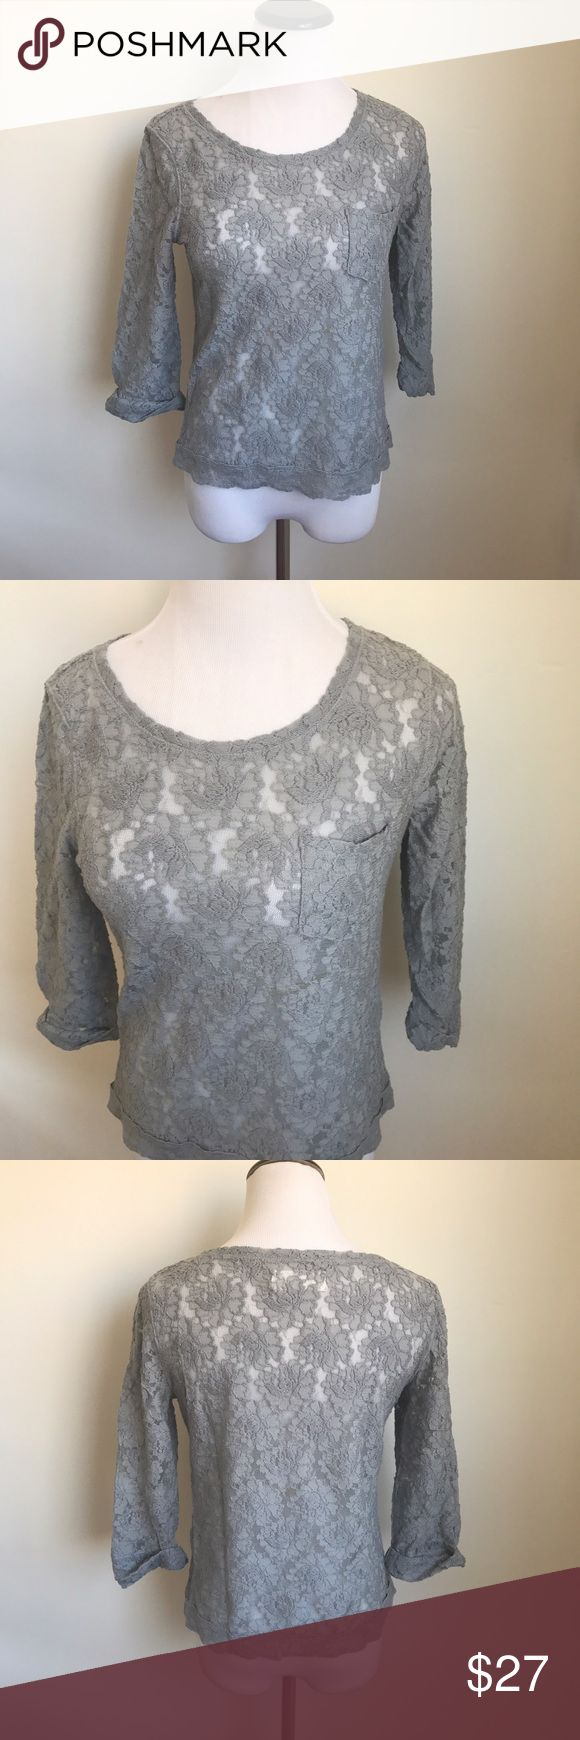 Abercrombie & Fitch Gray Lace Top Abercrombie and Fitch Gray Lace Top  Condition: great used condition   Size: small  Measurements Laying Flat: Underarm to underarm: 18 inches Total length: 21 inches   Check out my closet:  I have over 500 items.    👍🏻 Bundle and SAVE! 👍🏻 💰Discounts on Bundles 💰  💕Reasonable offers considered 💕 🙅🏻🙅🏻 NO TRADES 🙅🏻🙅🏻 🚫🚫NO MODELING🚫🚫 Abercrombie & Fitch Tops Blouses